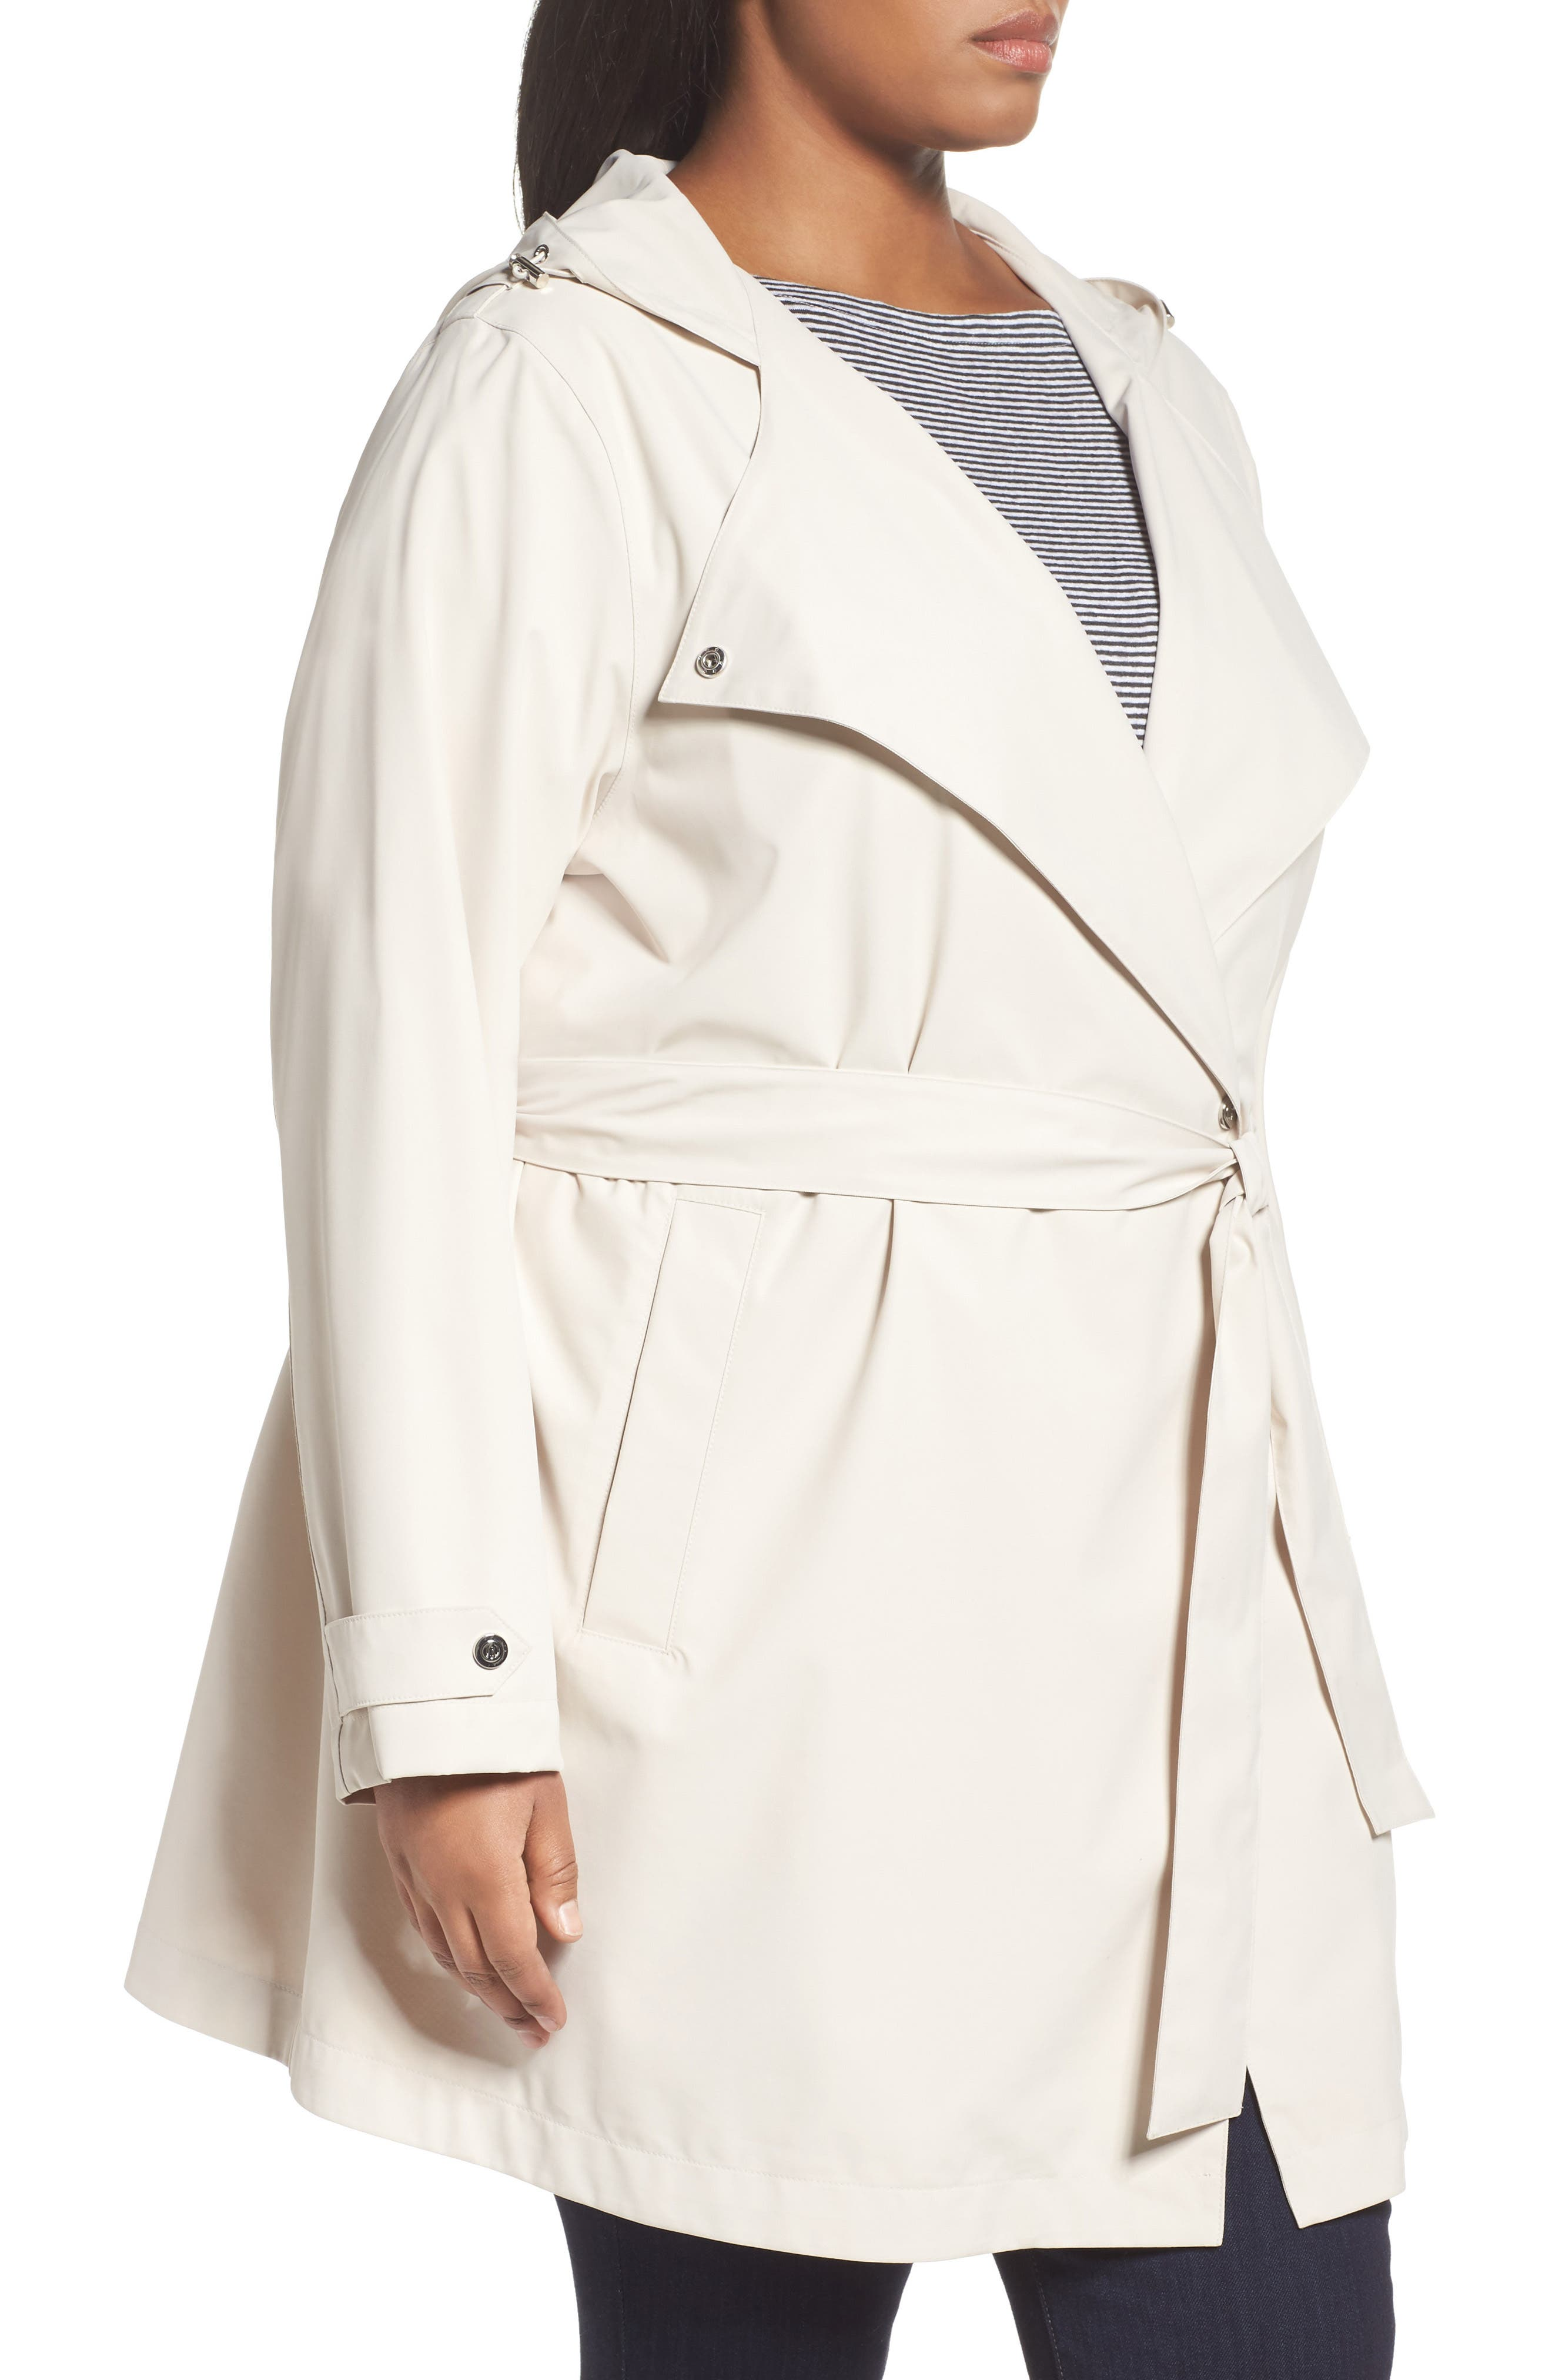 Breathable Microfiber Trench Coat,                             Alternate thumbnail 3, color,                             250